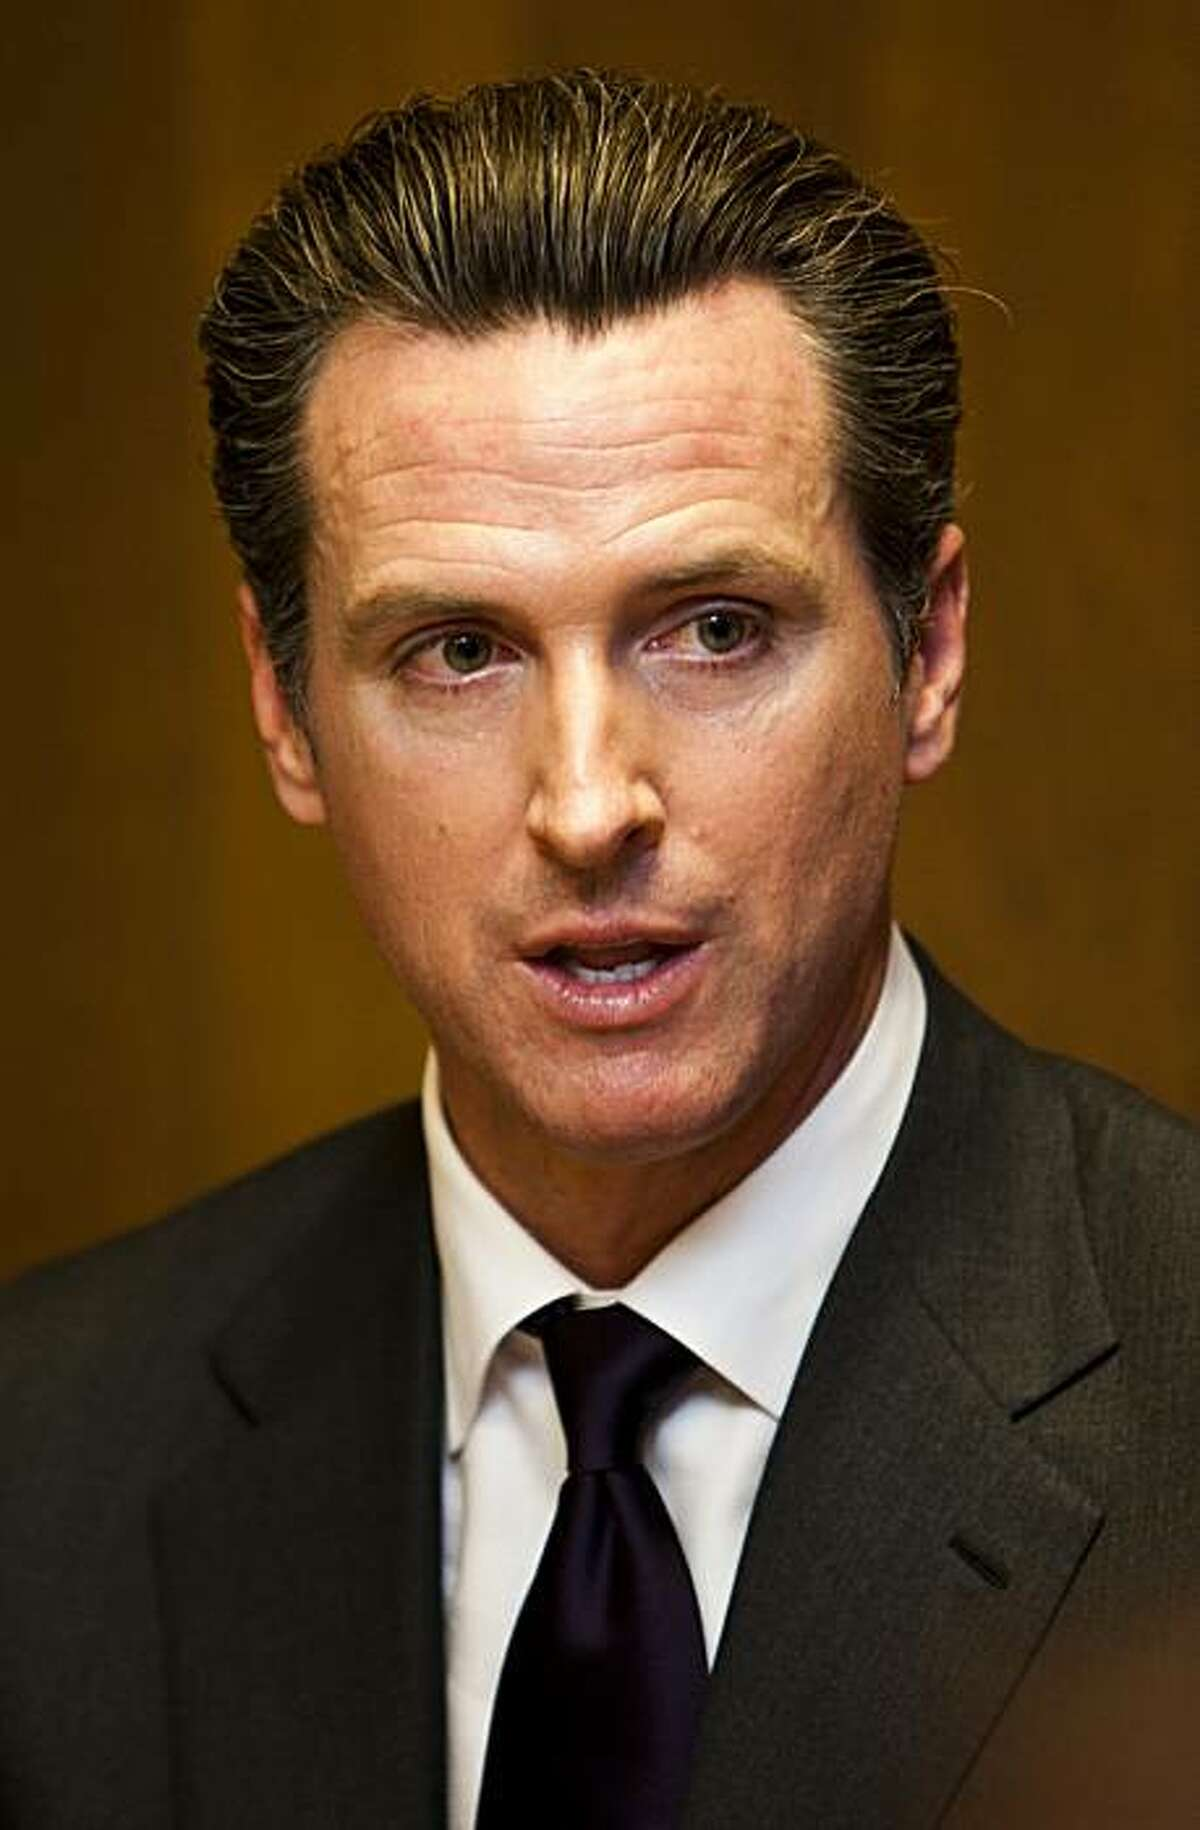 San Francisco Mayor Gavin Newsom, Democratic candidate for lieutenant governor of California, met with the San Francisco Chronicle Editorial Board on Wednesday, Sept. 15, 2010.